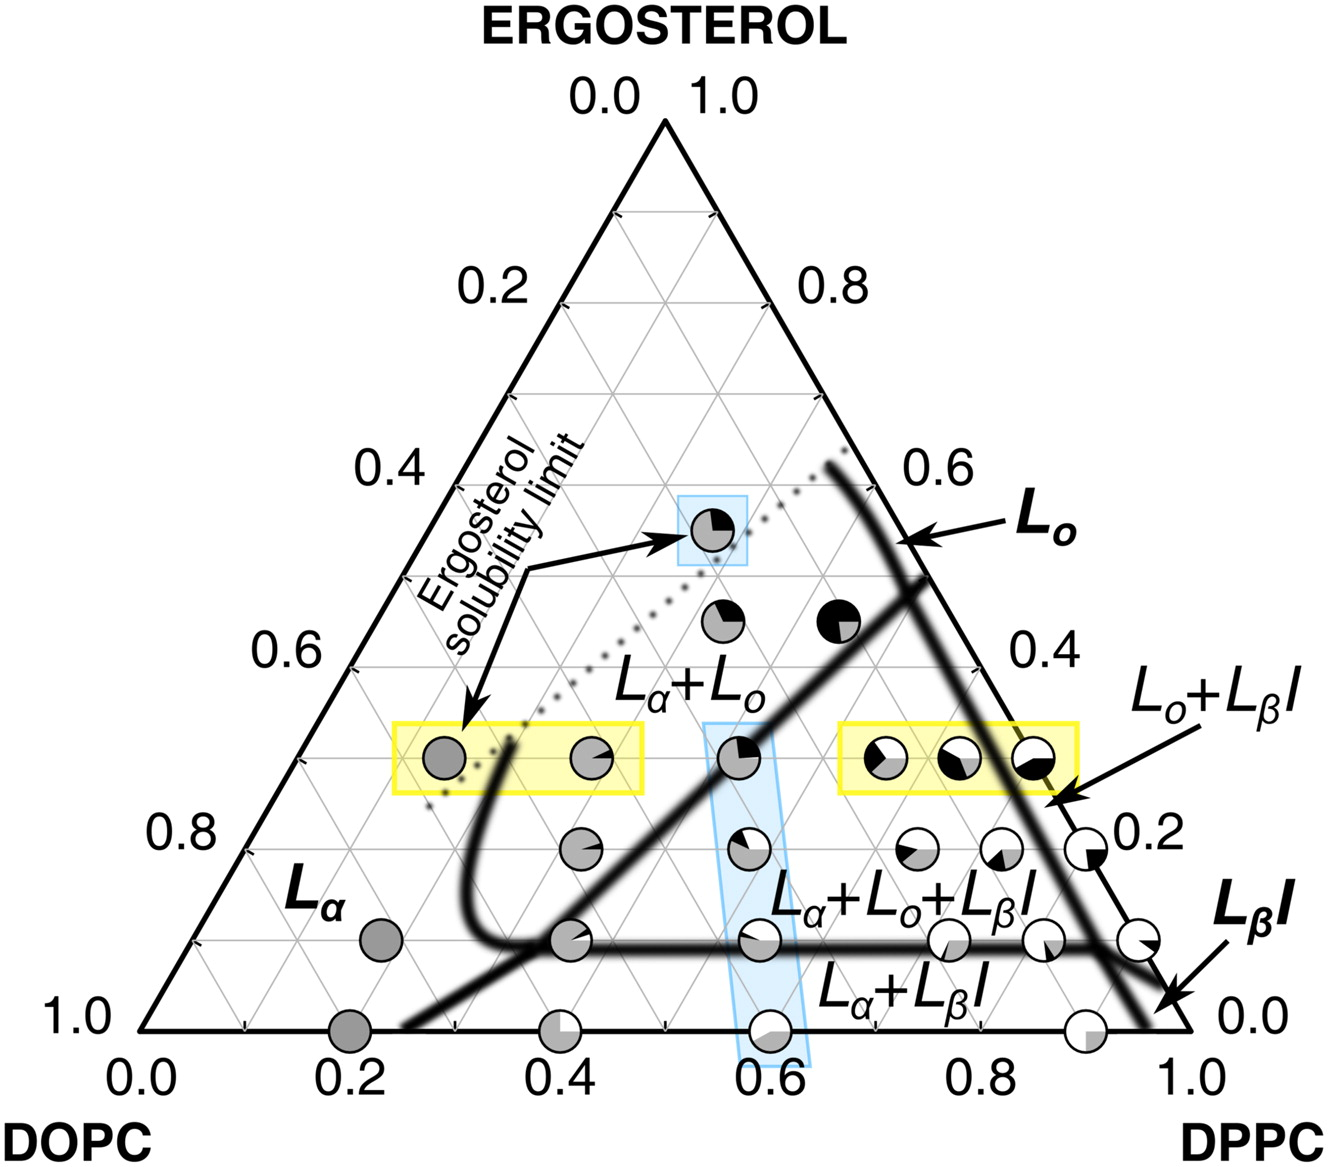 Role Of Unsaturated Lipid And Ergosterol In Ethanol